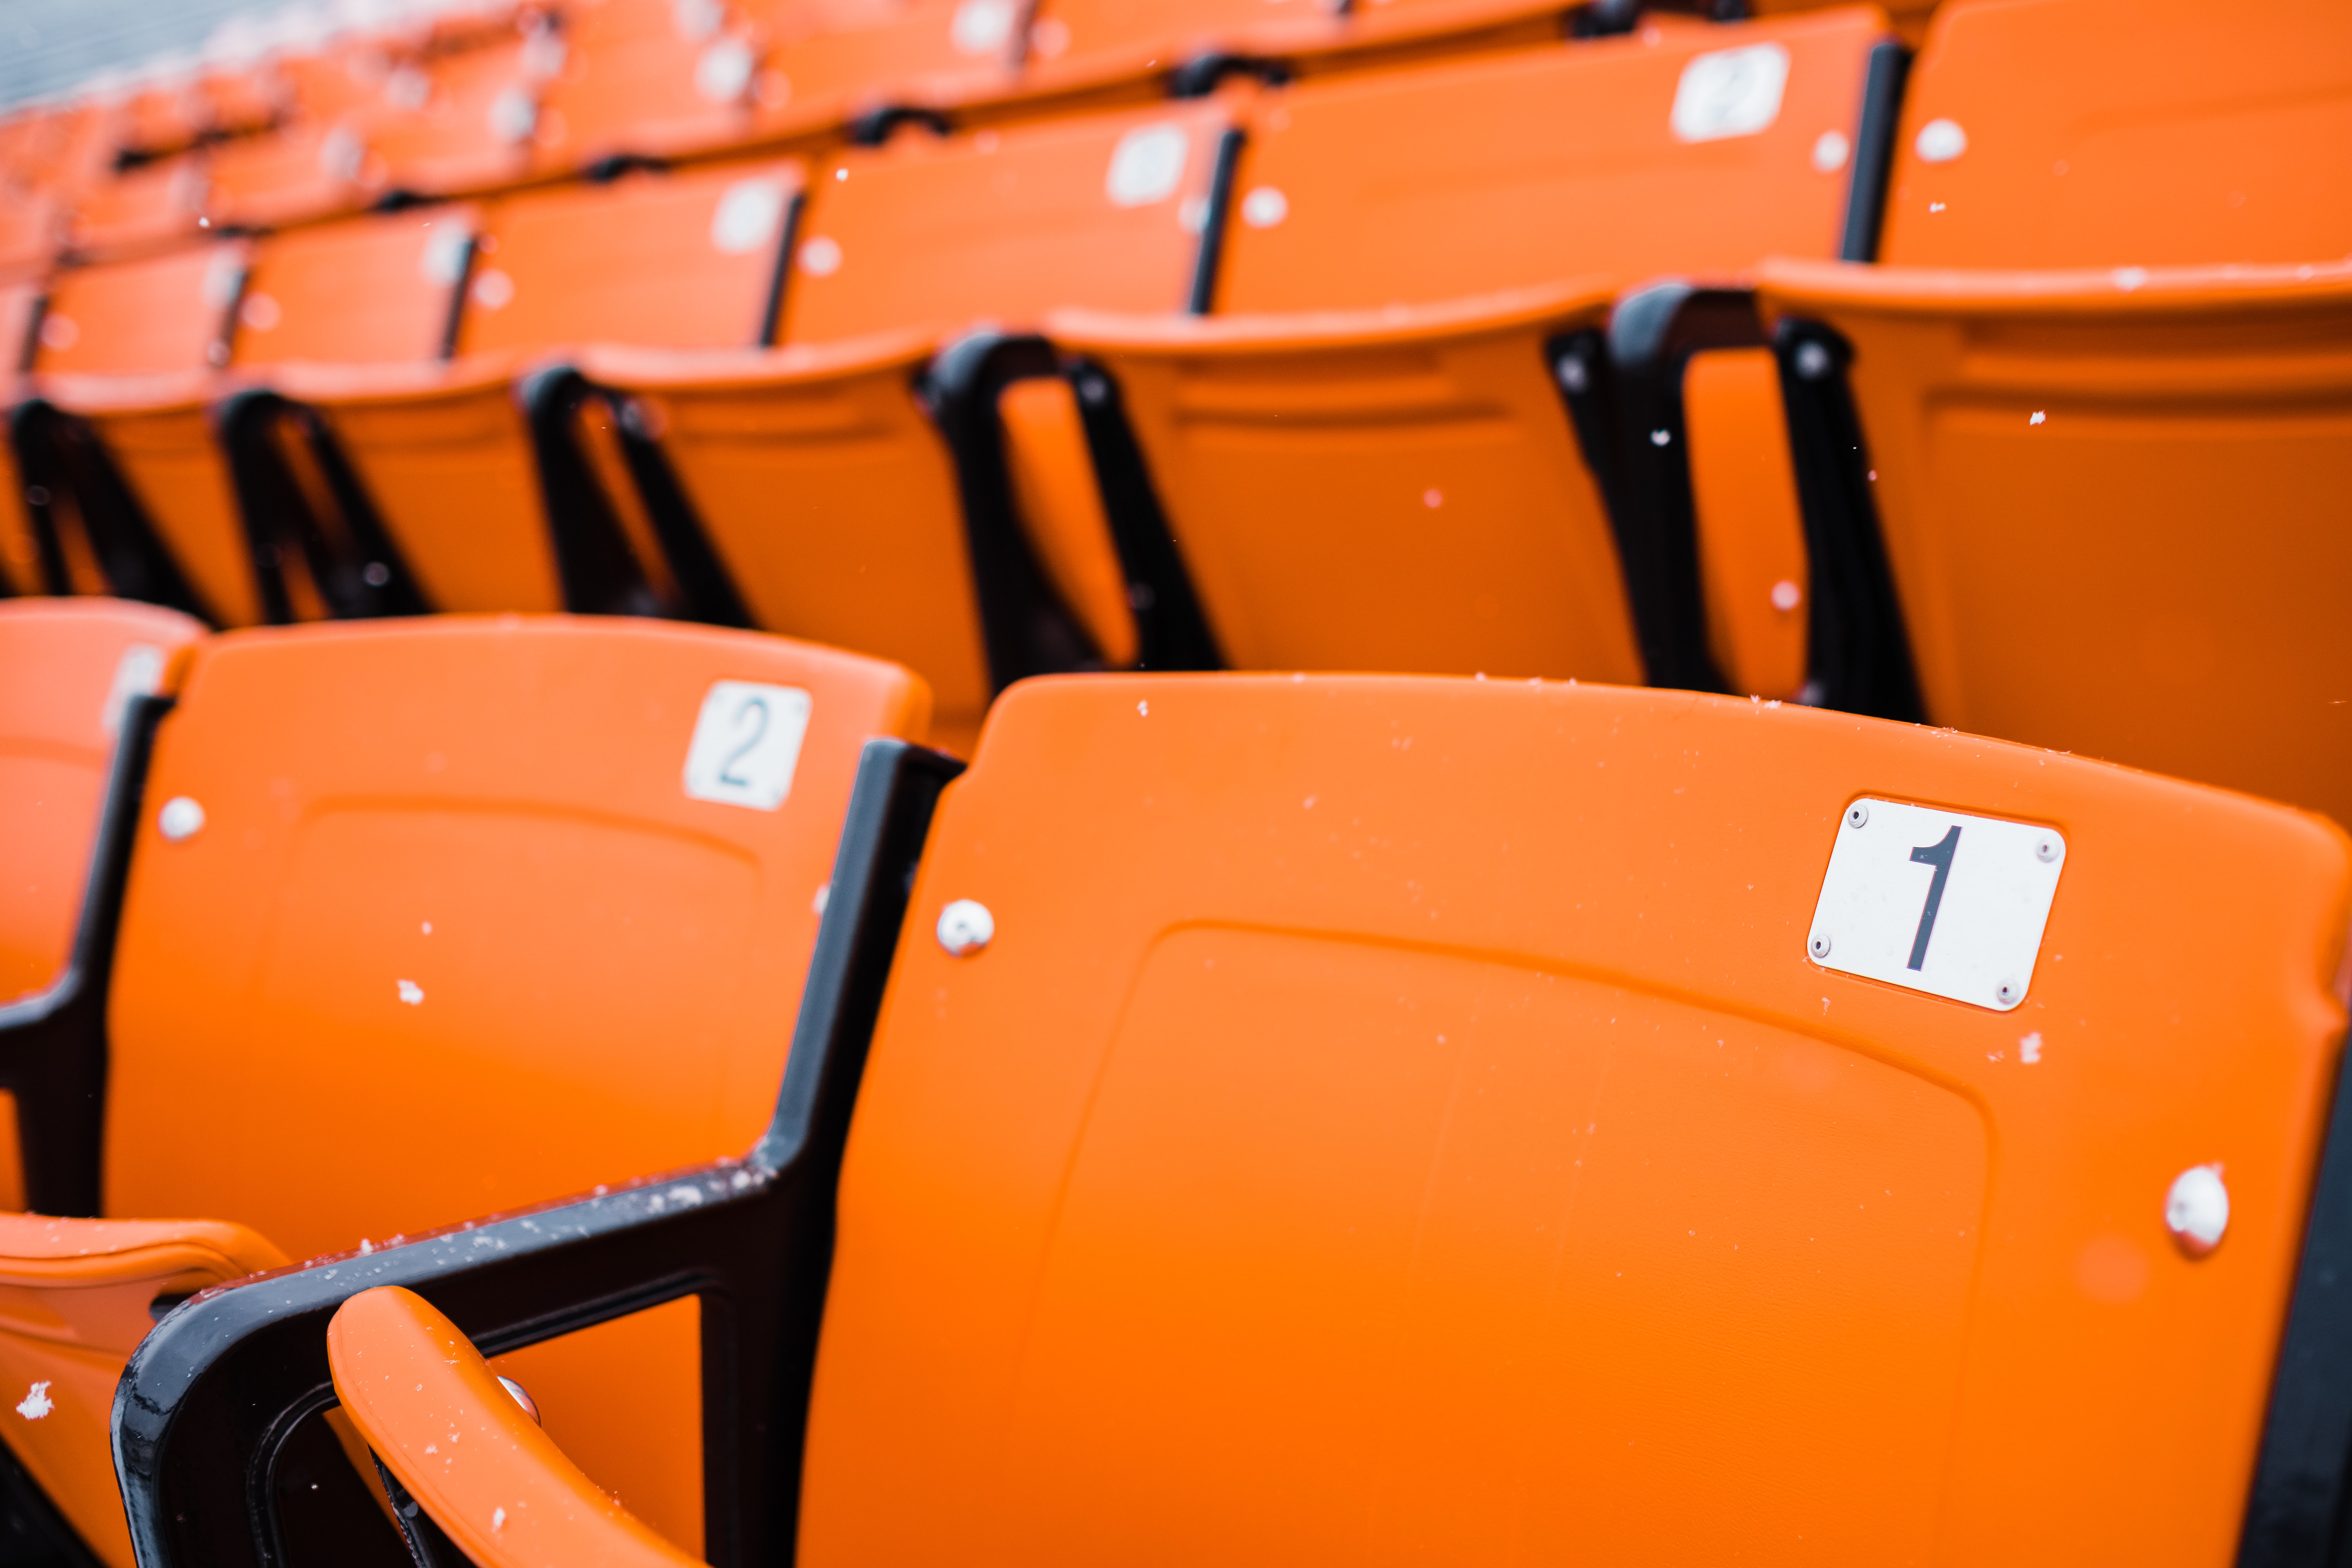 shallow focus photography of orange chairs